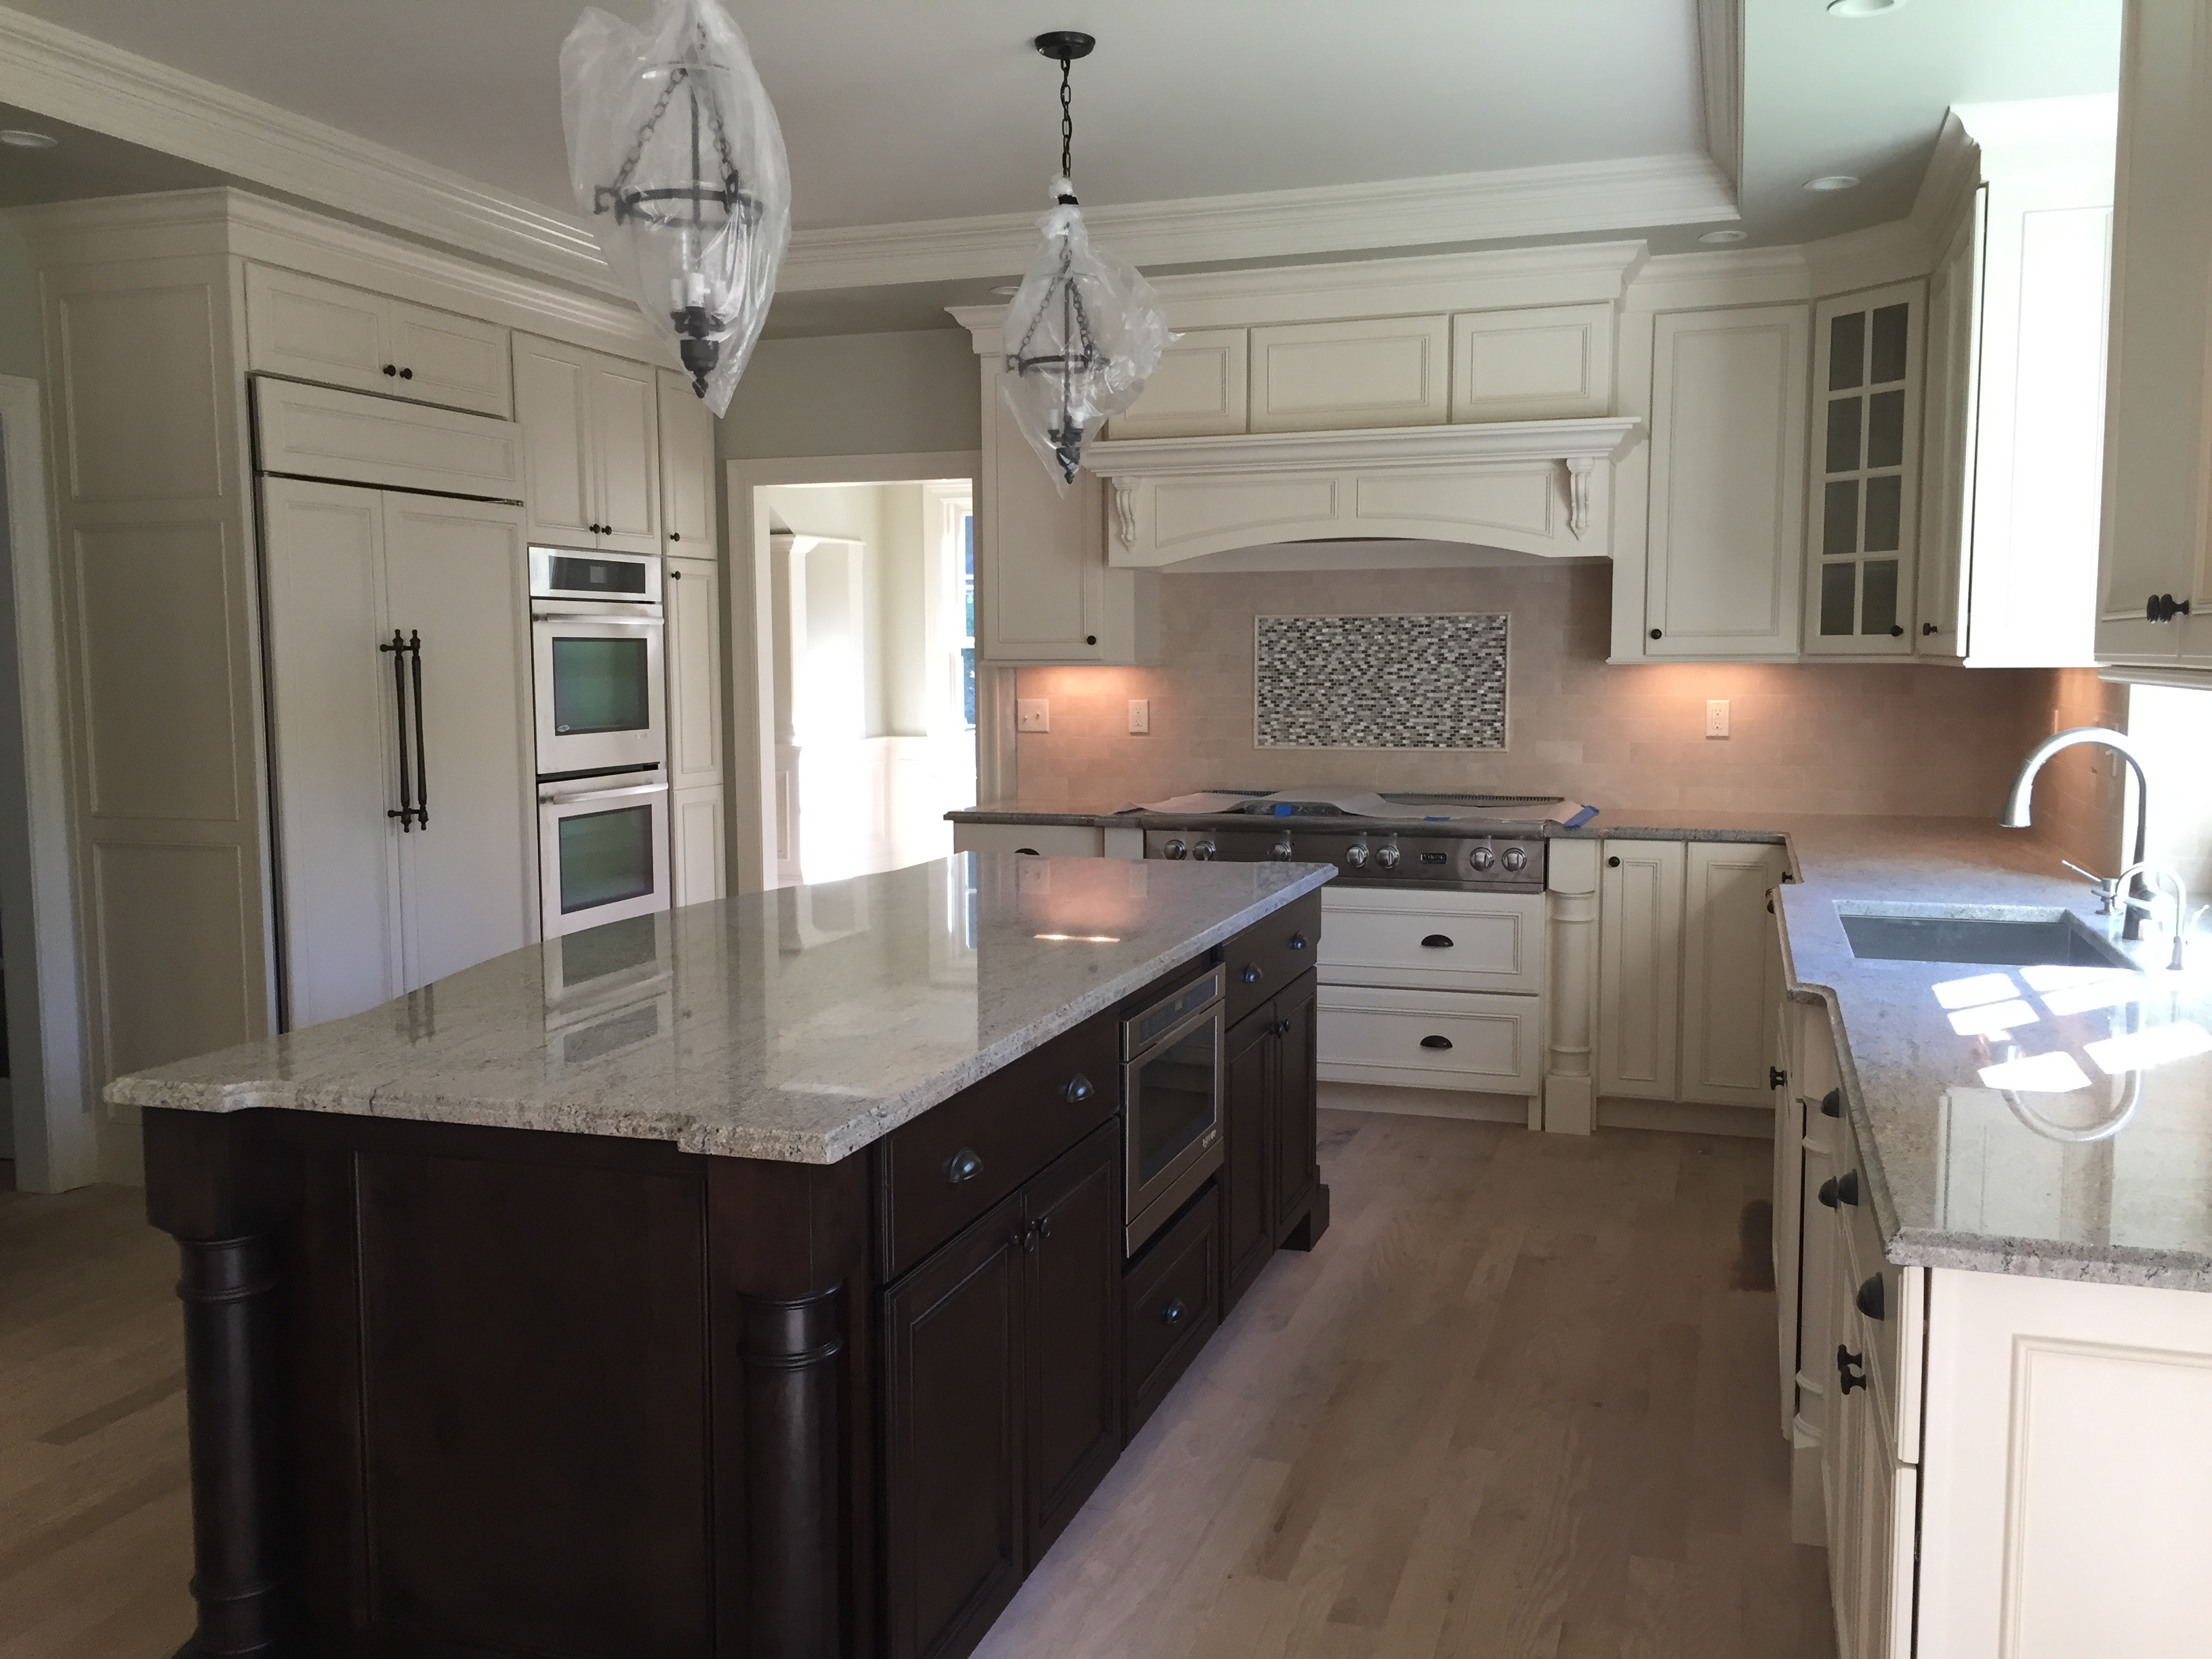 New Construction in Wellesley, MA